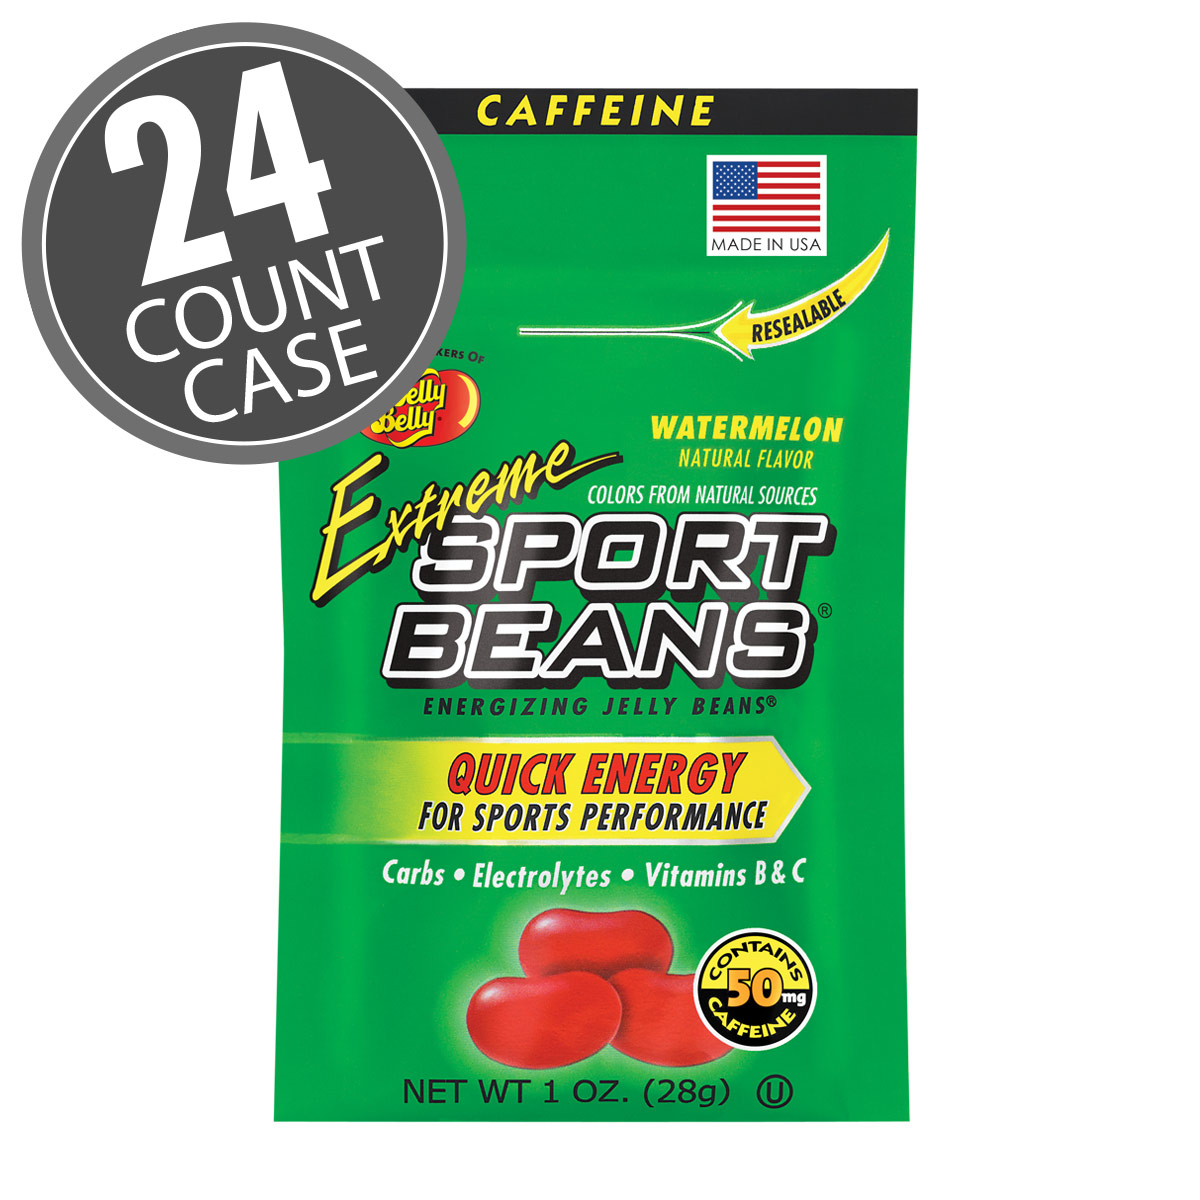 Extreme Sport Beans<sup>&reg;</sup> Jelly Beans with CAFFEINE - Watermelon 24-Pack